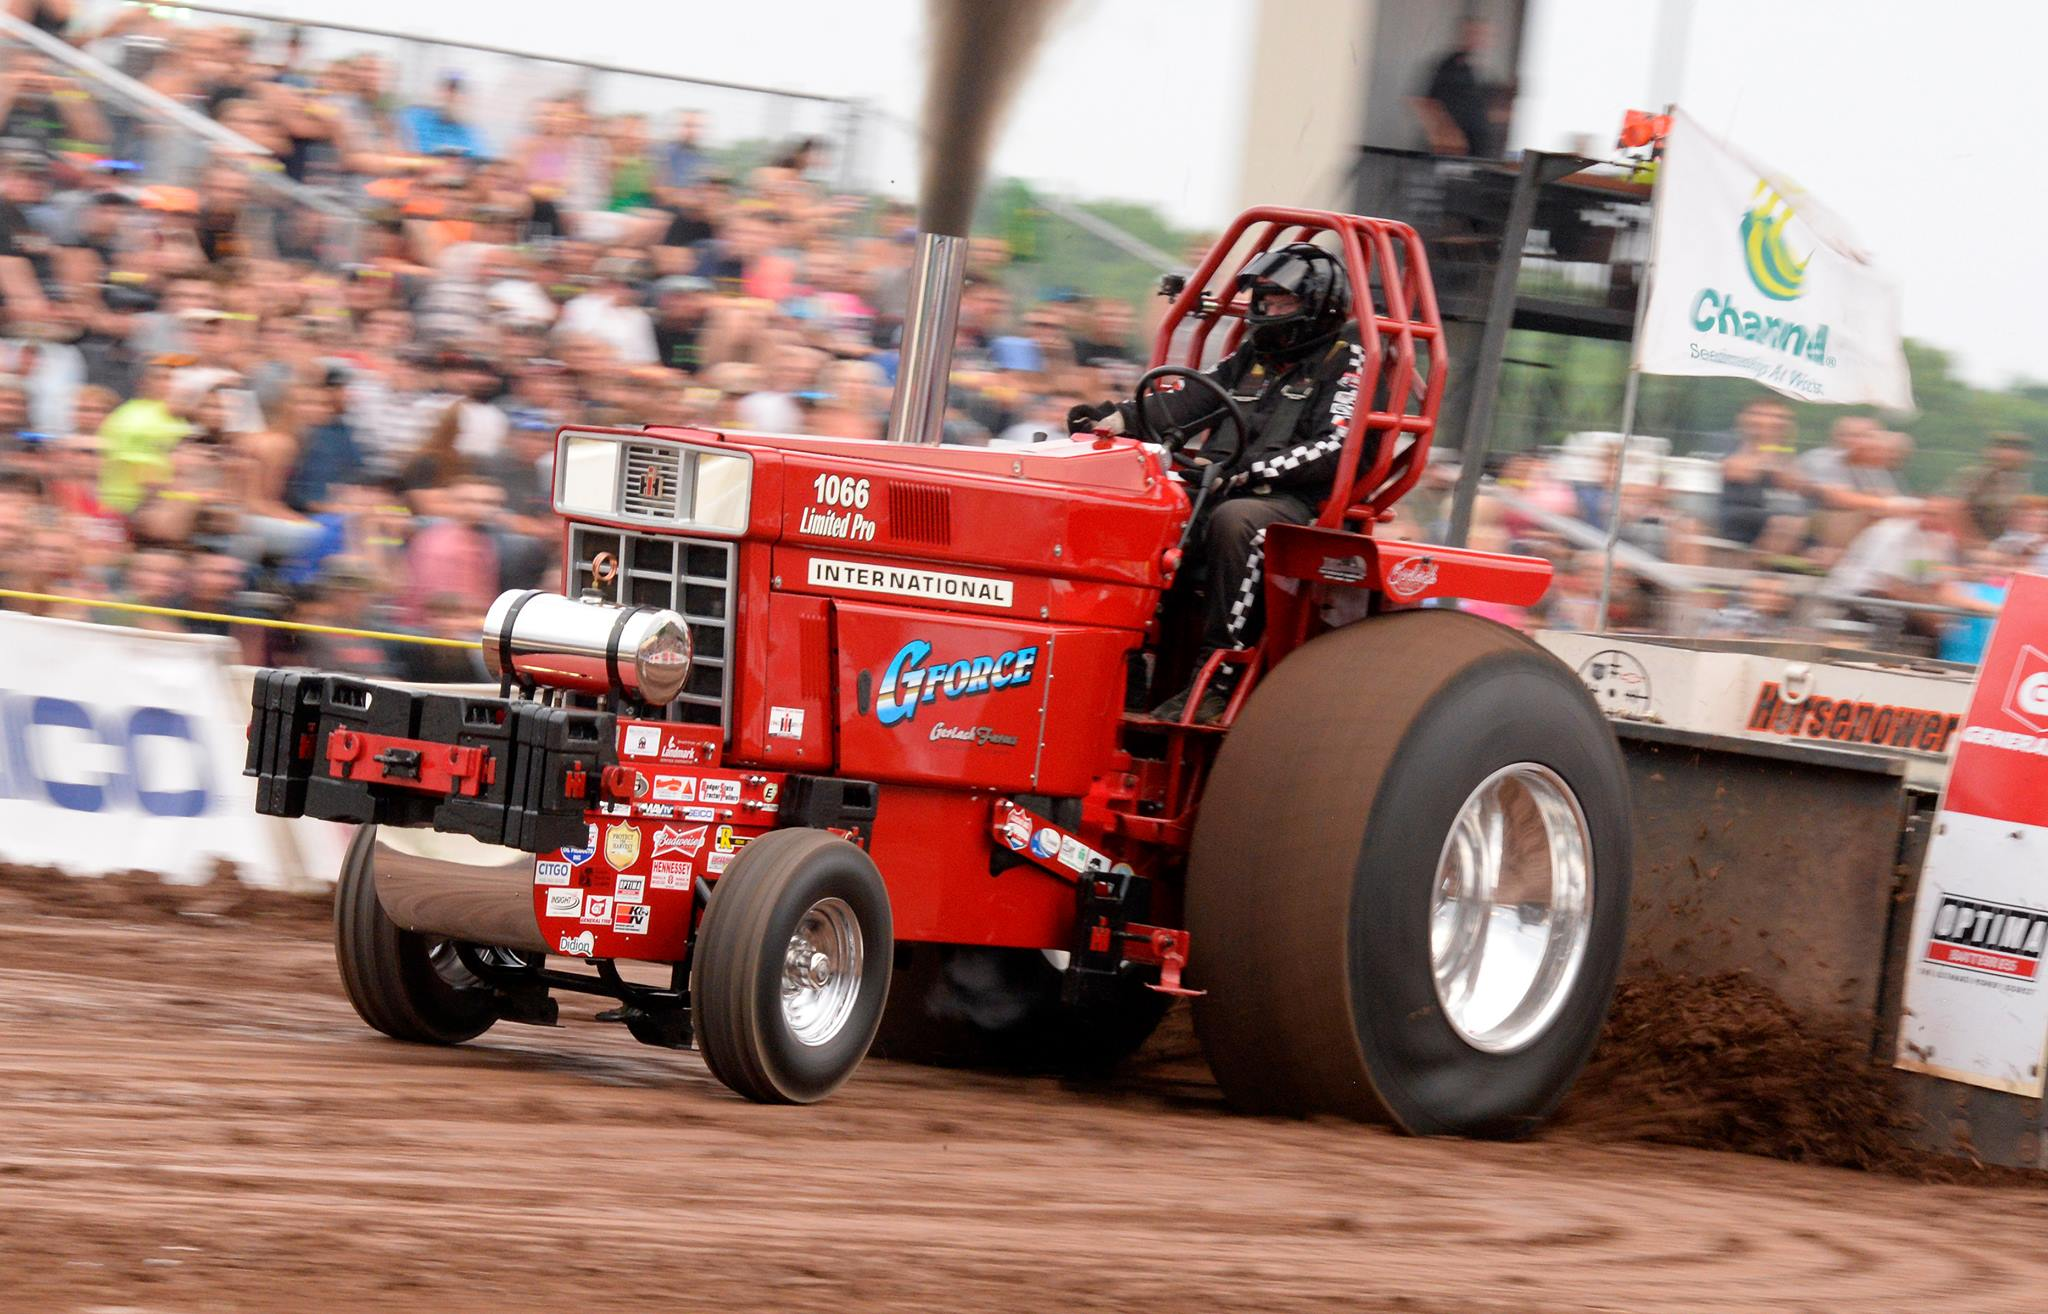 Limited Pro Tractors